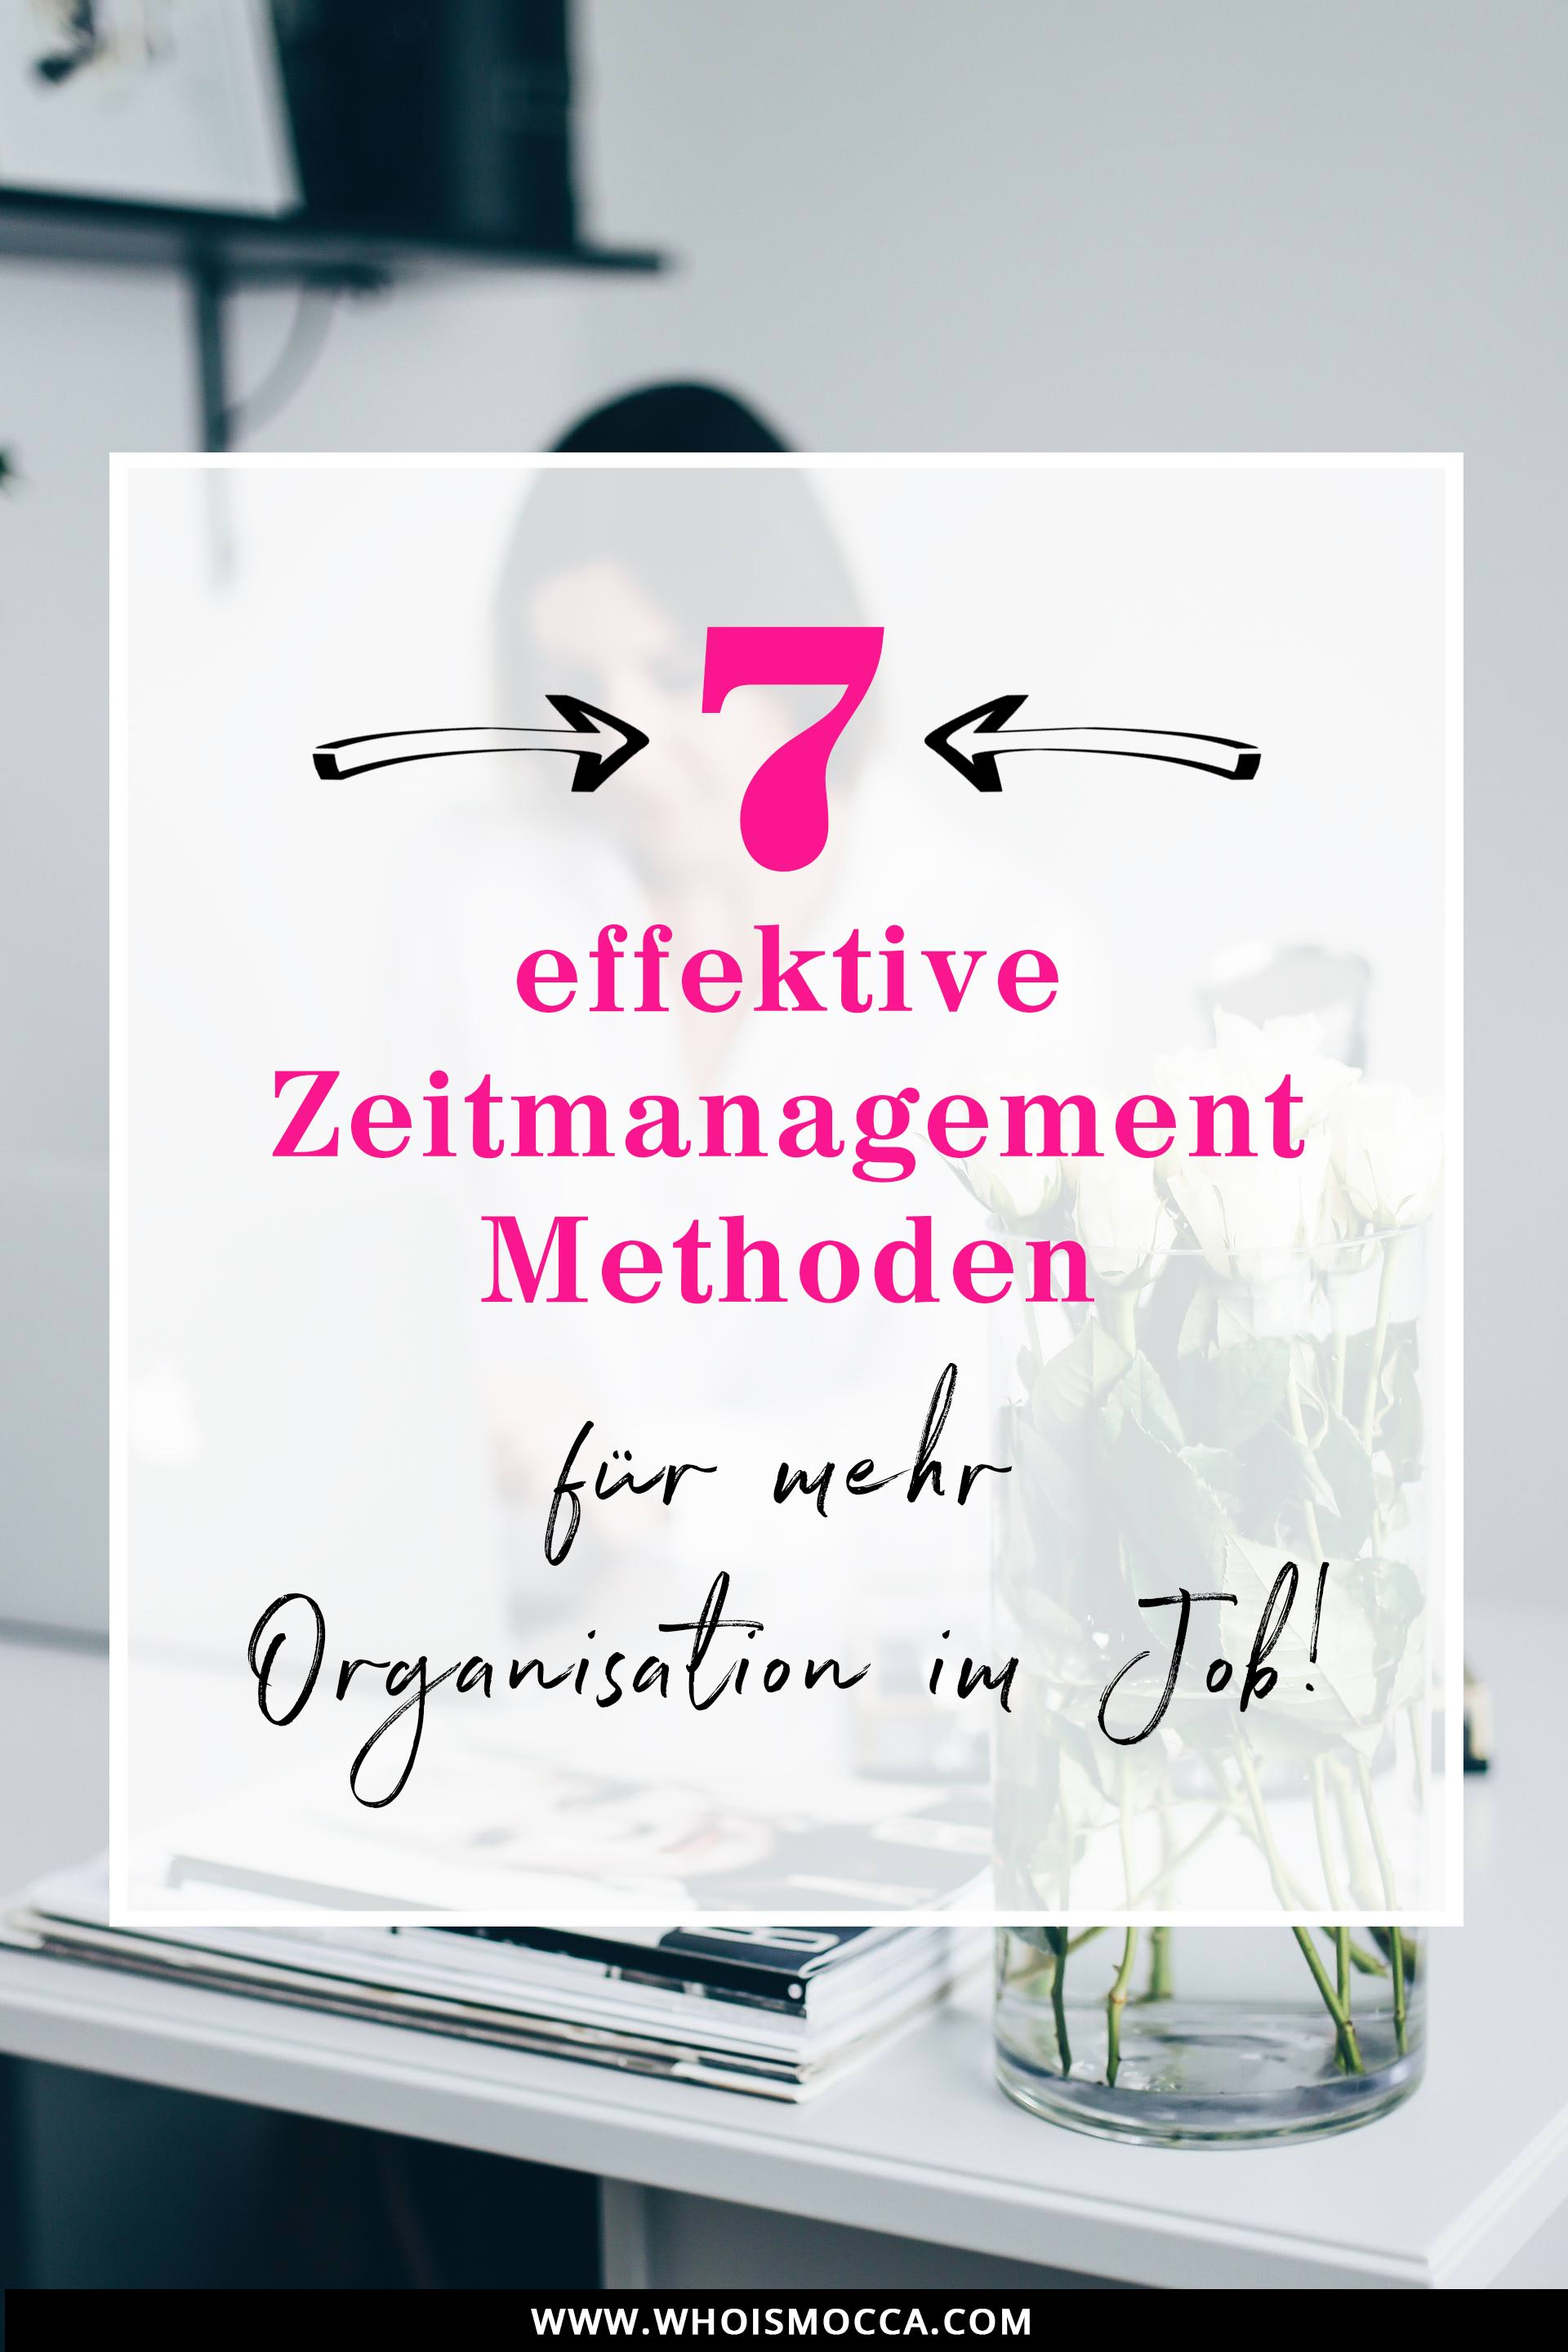 7 effektive Zeitmanagement Methoden für mehr Organisation im Büroalltag, Home Office Tipps, Karriere Blog, Women at Work, Online Business, Organisation im Job, Style Blog, www.whoismocca.com